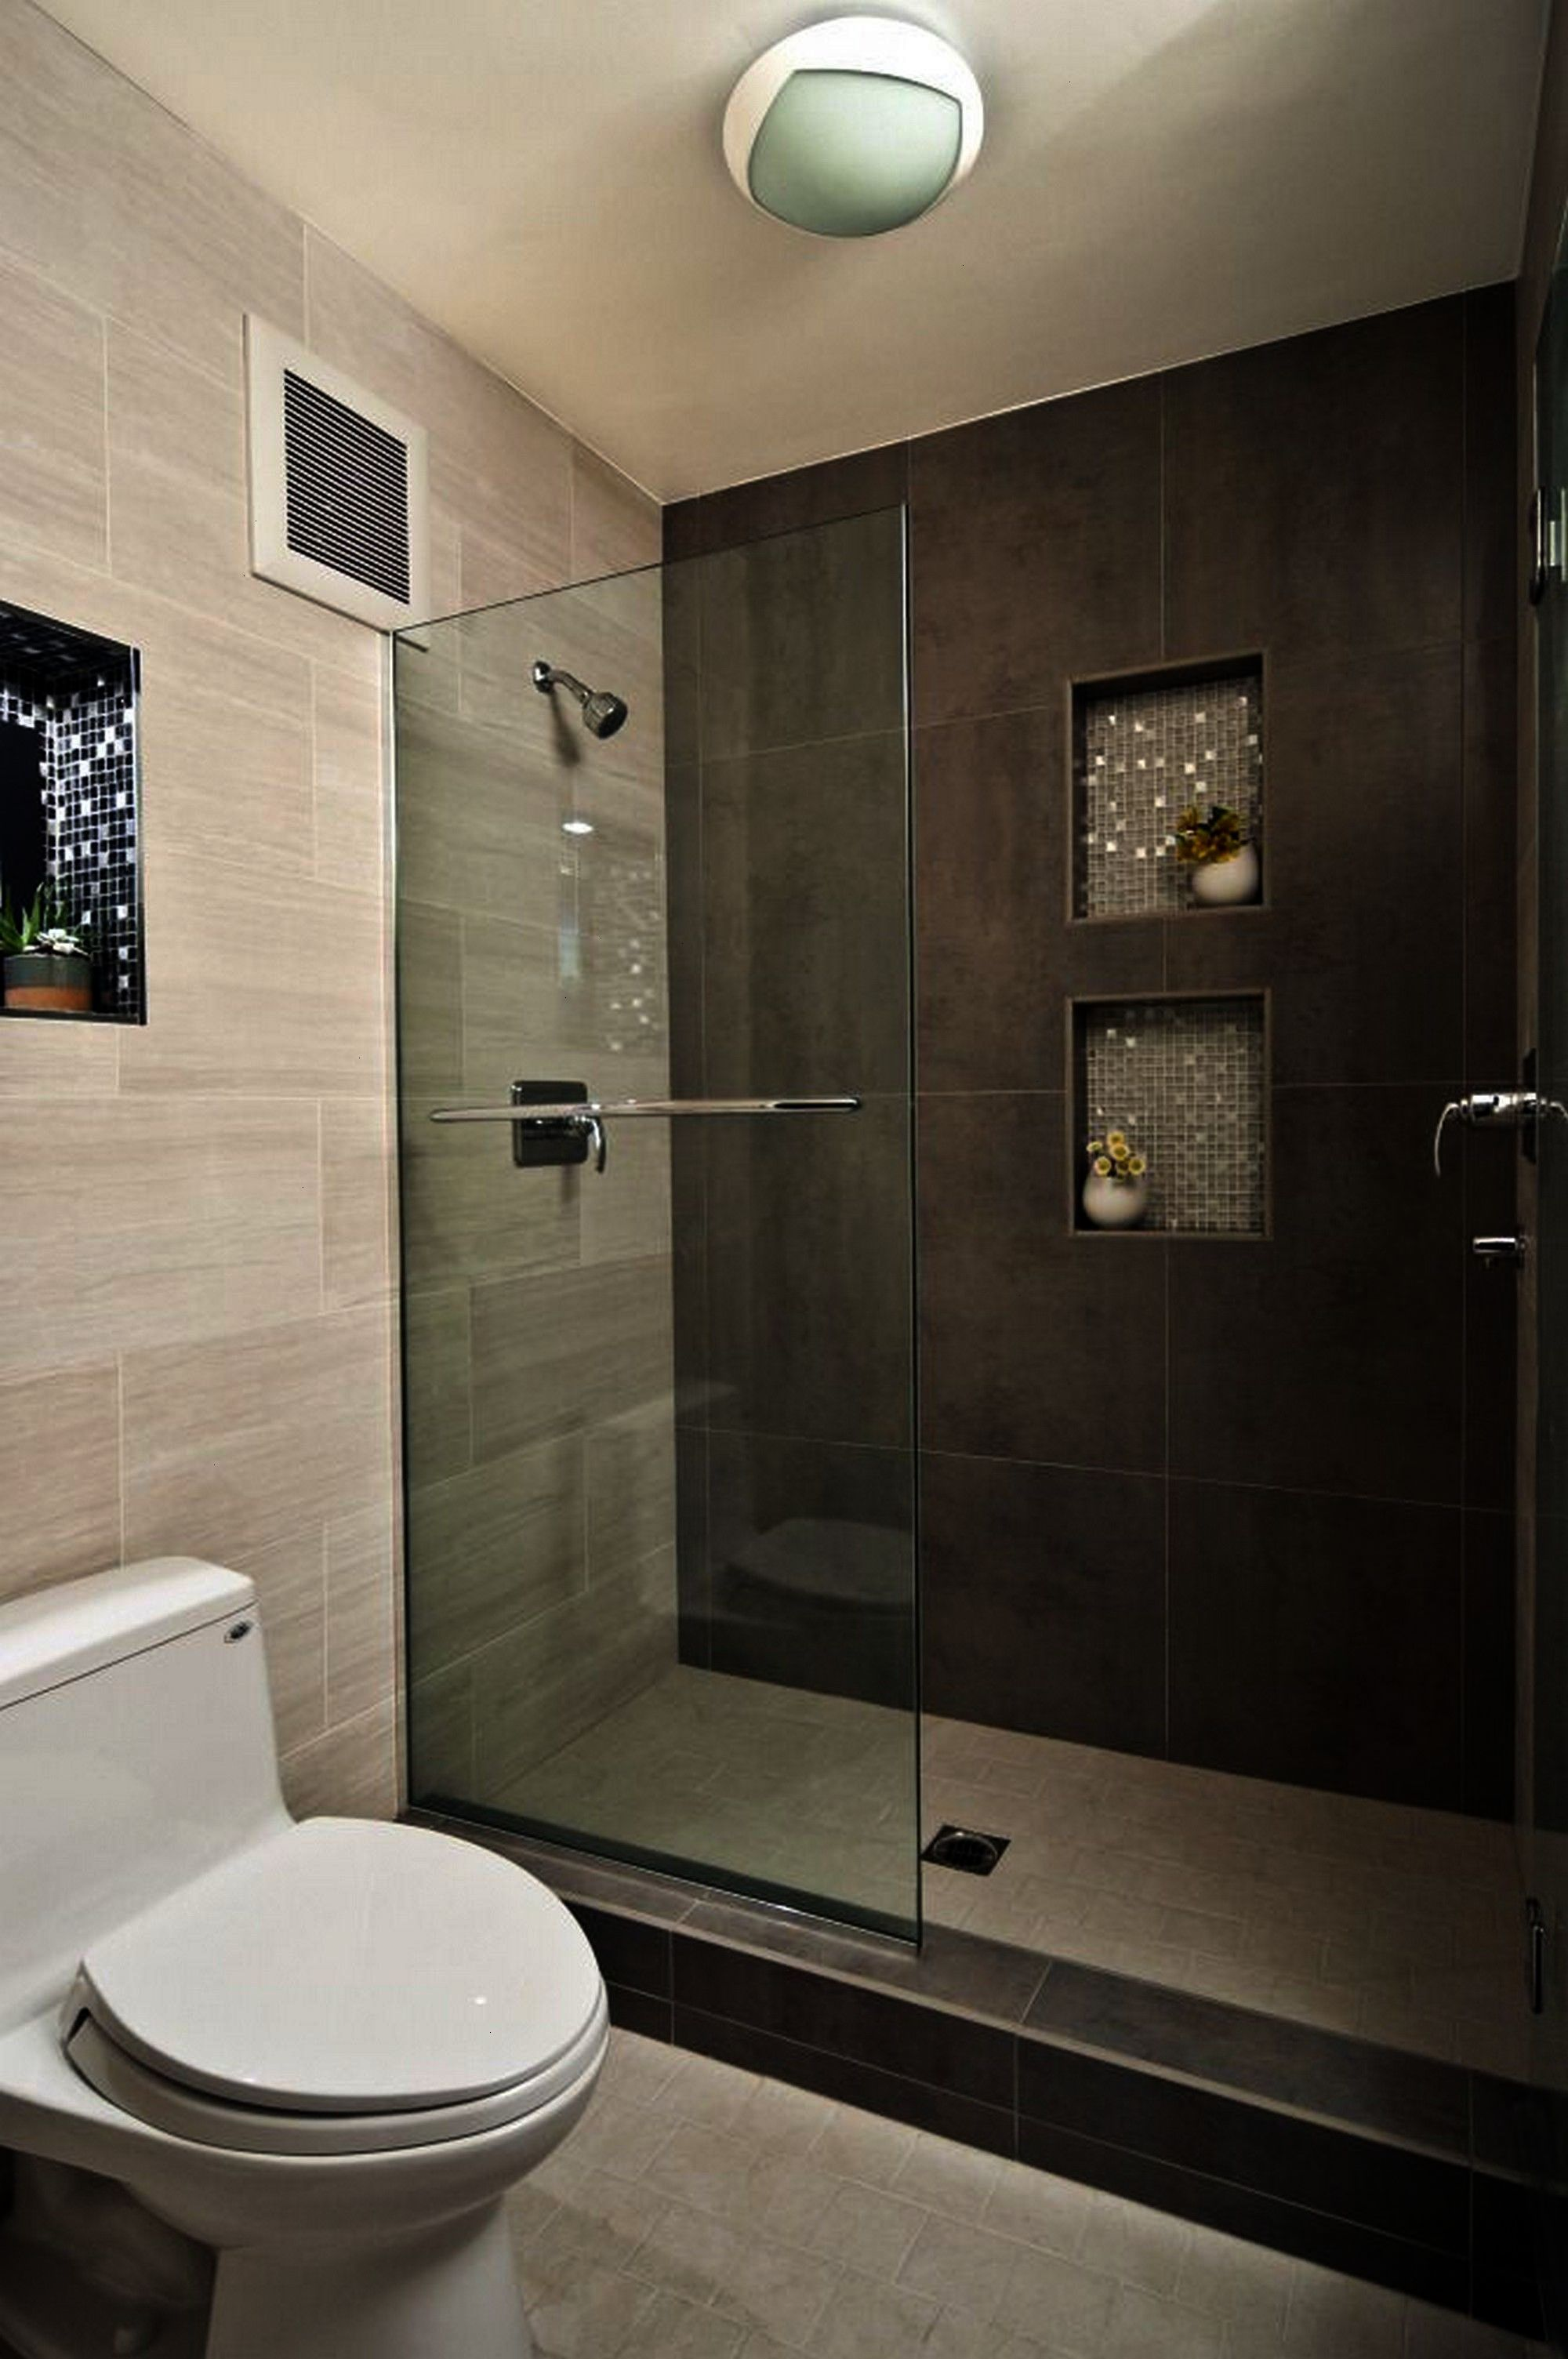 Small Bathroom Ideas With Walk In Shower Small Bathroom Remodel Bathroom Remodel Master Bathroom Design Small